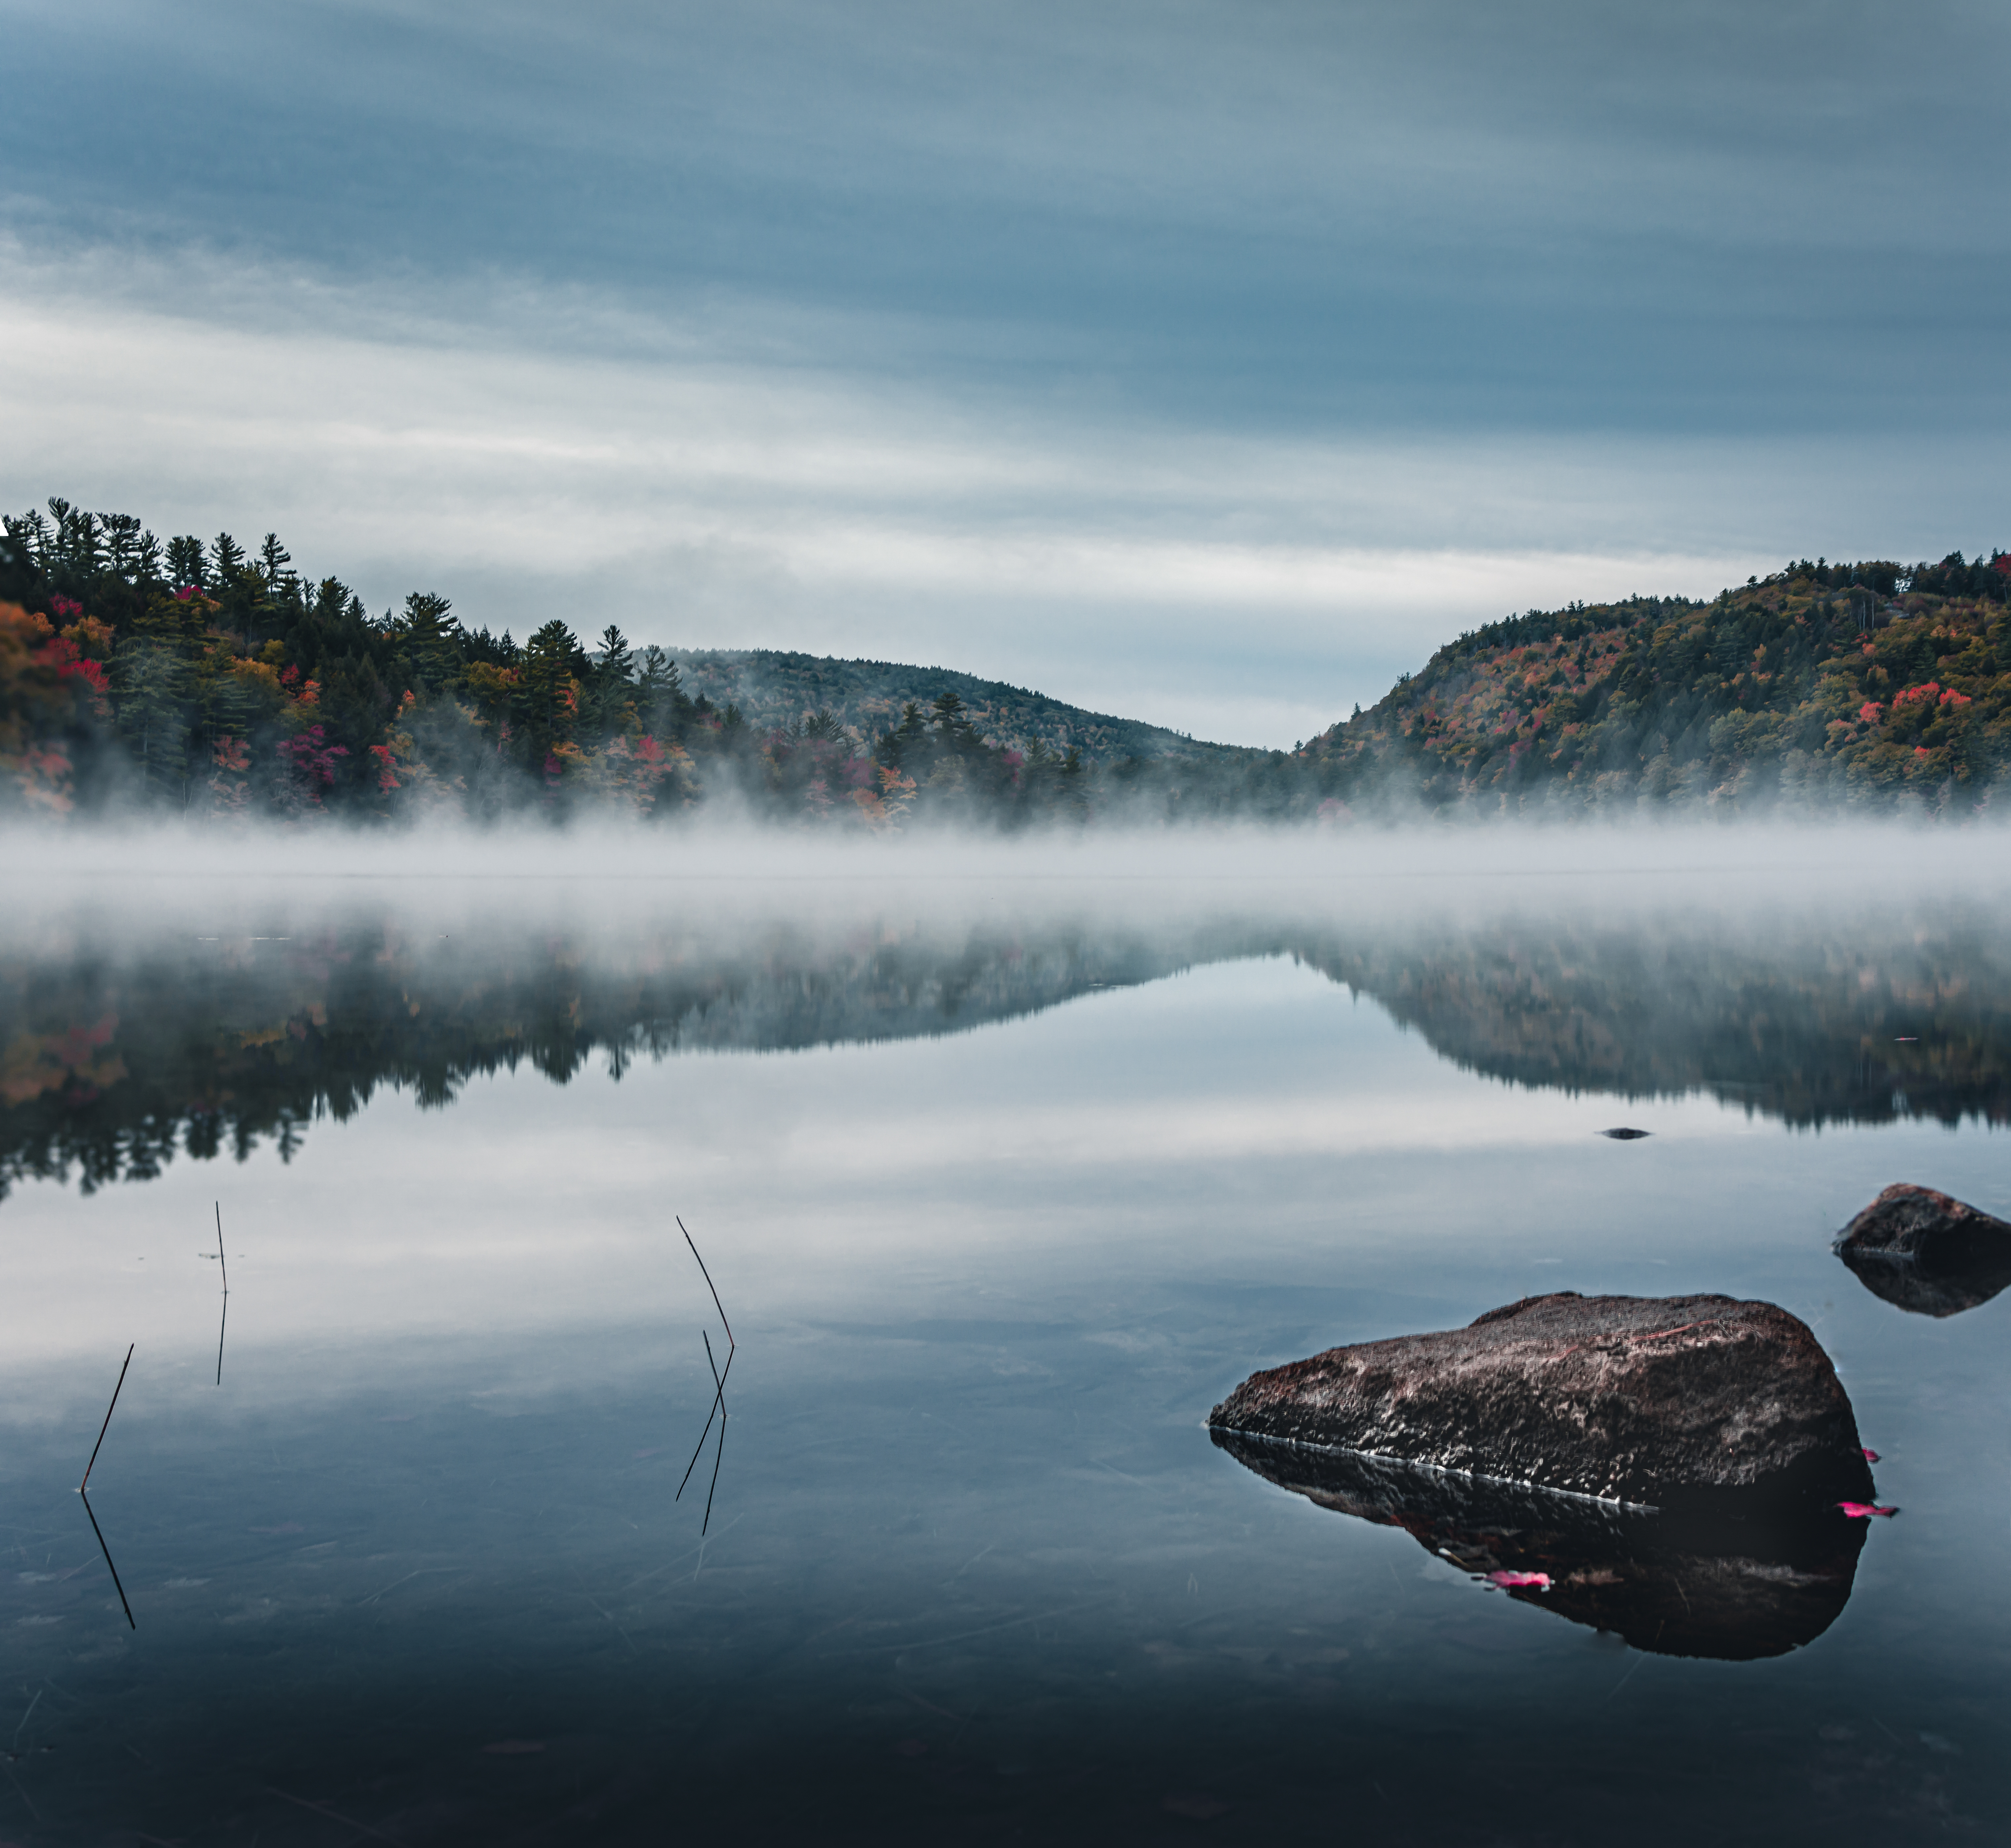 Mist on the water in Maine